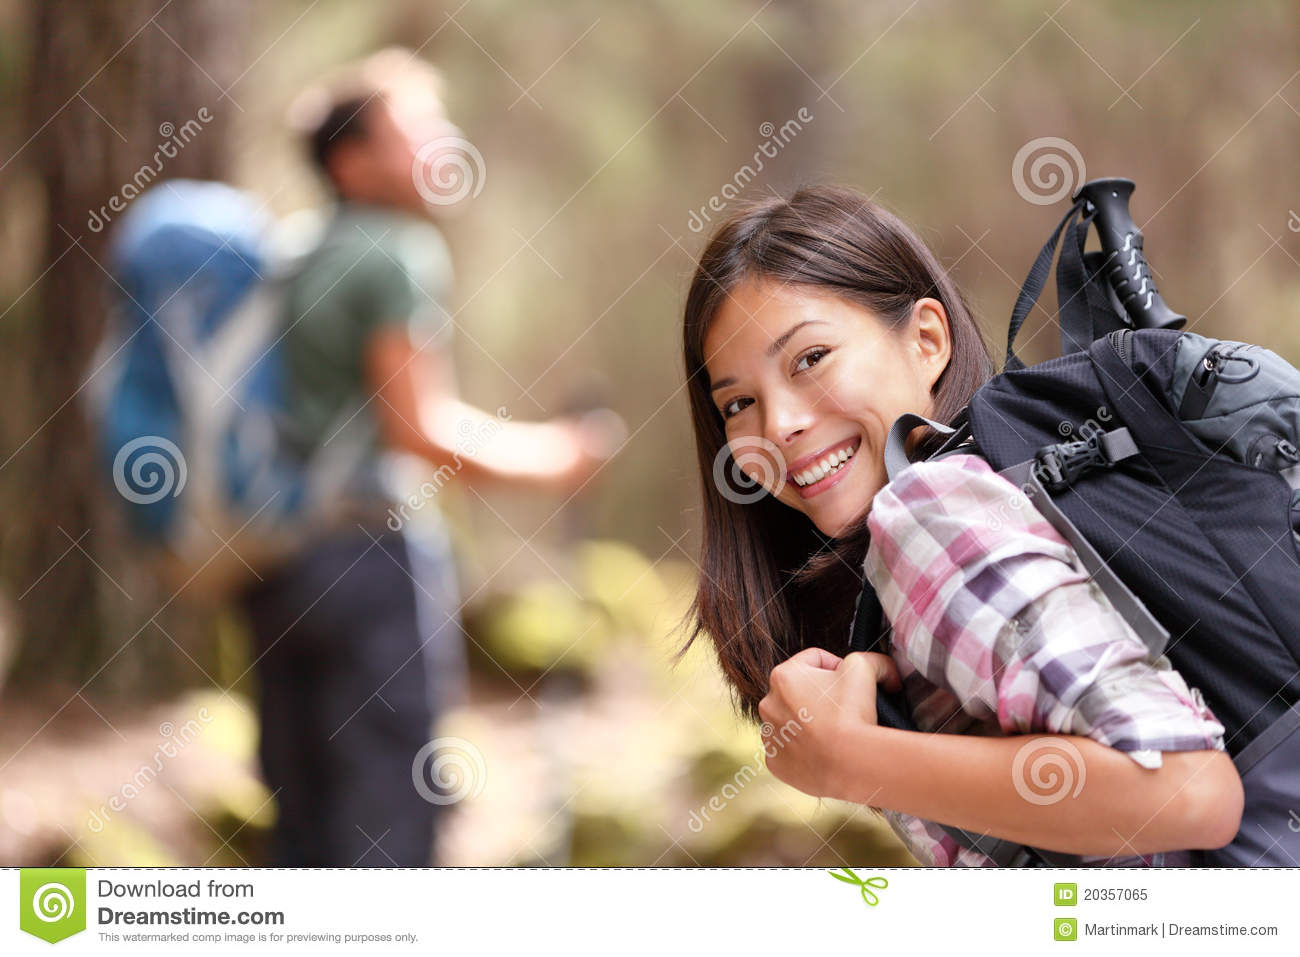 Hiking people friends - girl hiker in forest